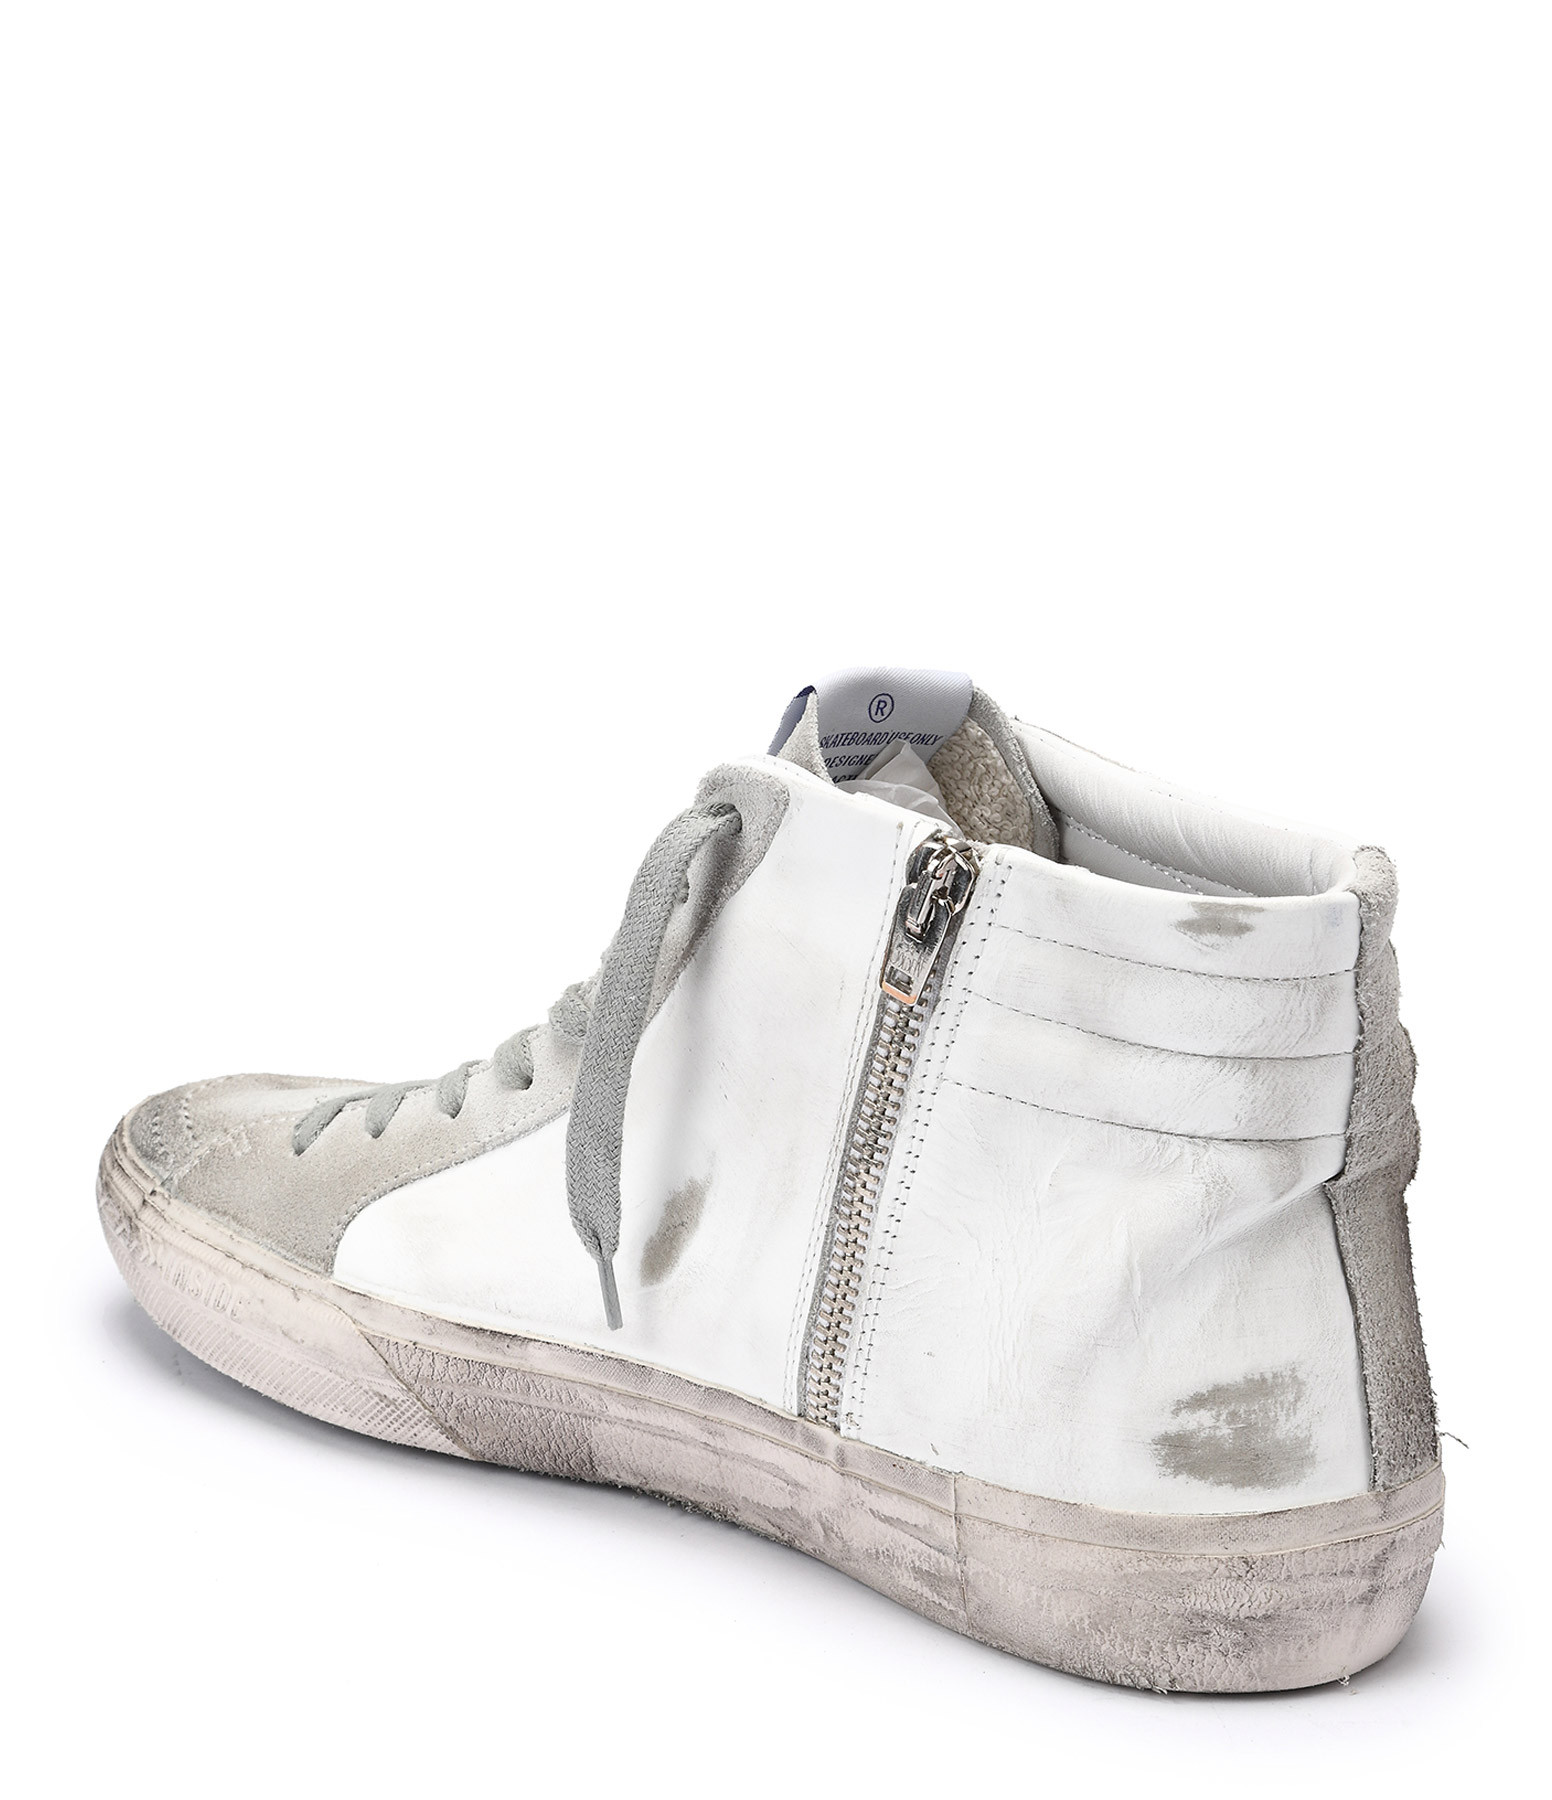 Baskets Sneakers Slide Homme Cuir Blanc - GOLDEN GOOSE